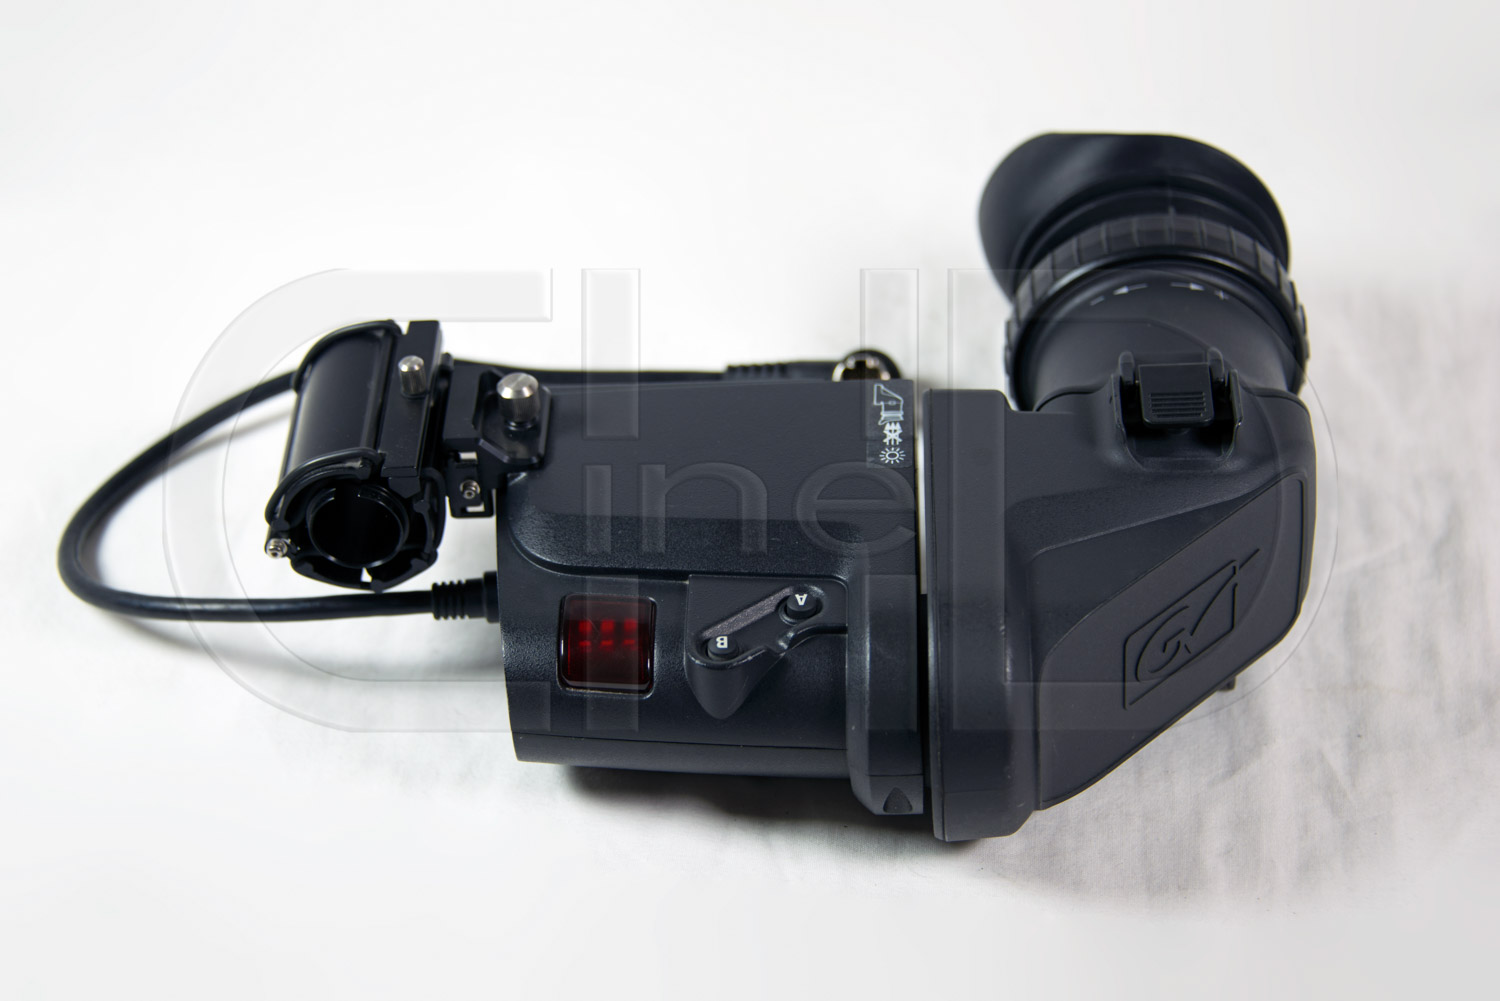 2.7in High Performance Colour Ocular LCD viewfinder for LDX series cameras